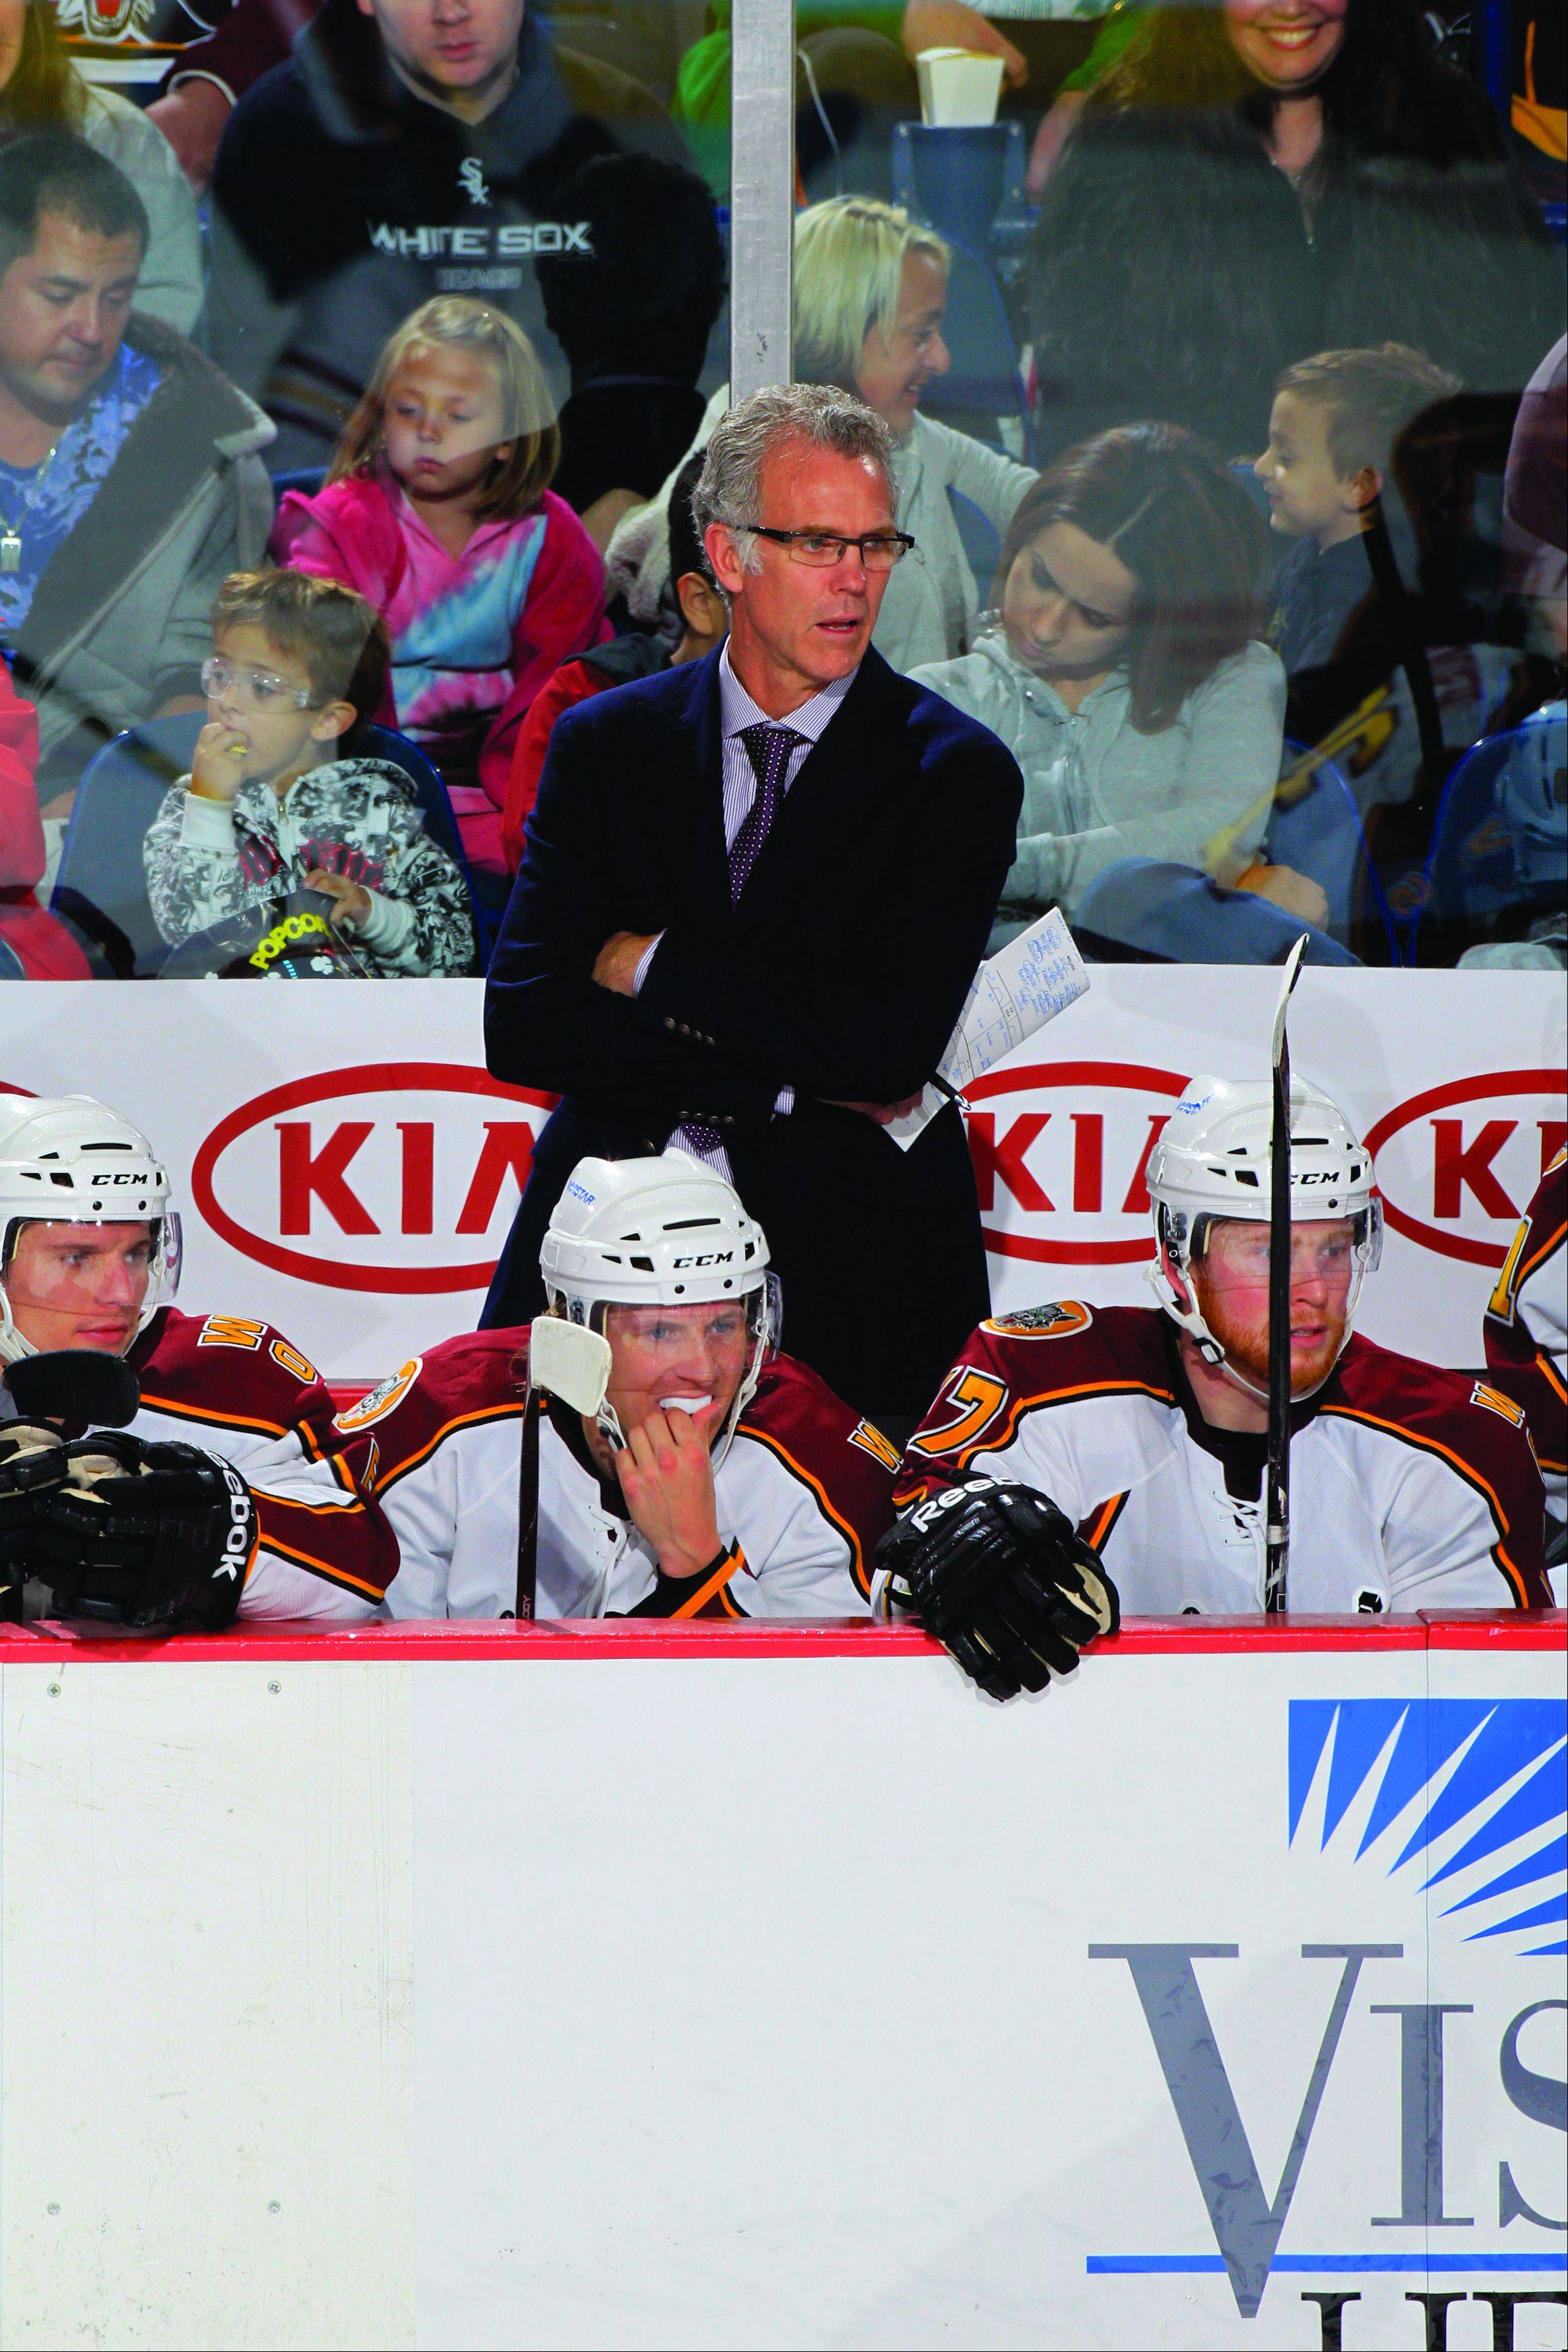 Wolves coach Craig MacTavish, who was a part of four Stanley Cup championships, says he's enjoying his return to coaching after spending a few years as a TV analyst. The Wolves have home games on Saturday and Sunday at Allstate Arena.